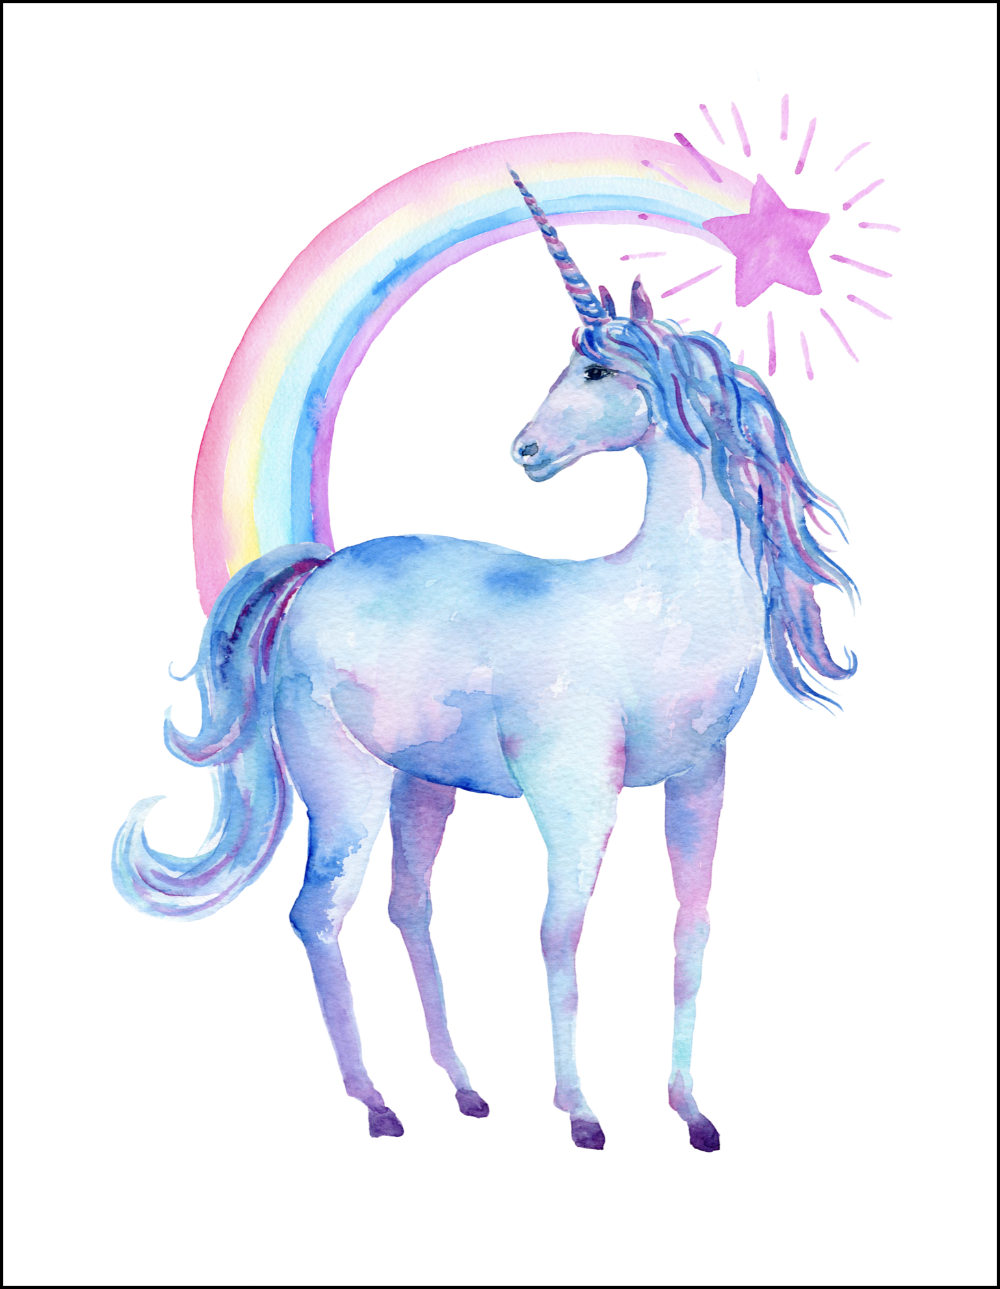 graphic regarding Printable Unicorn Pictures titled Totally free Printable Watercolor Unicorn Illustrations or photos - Oh My Resourceful